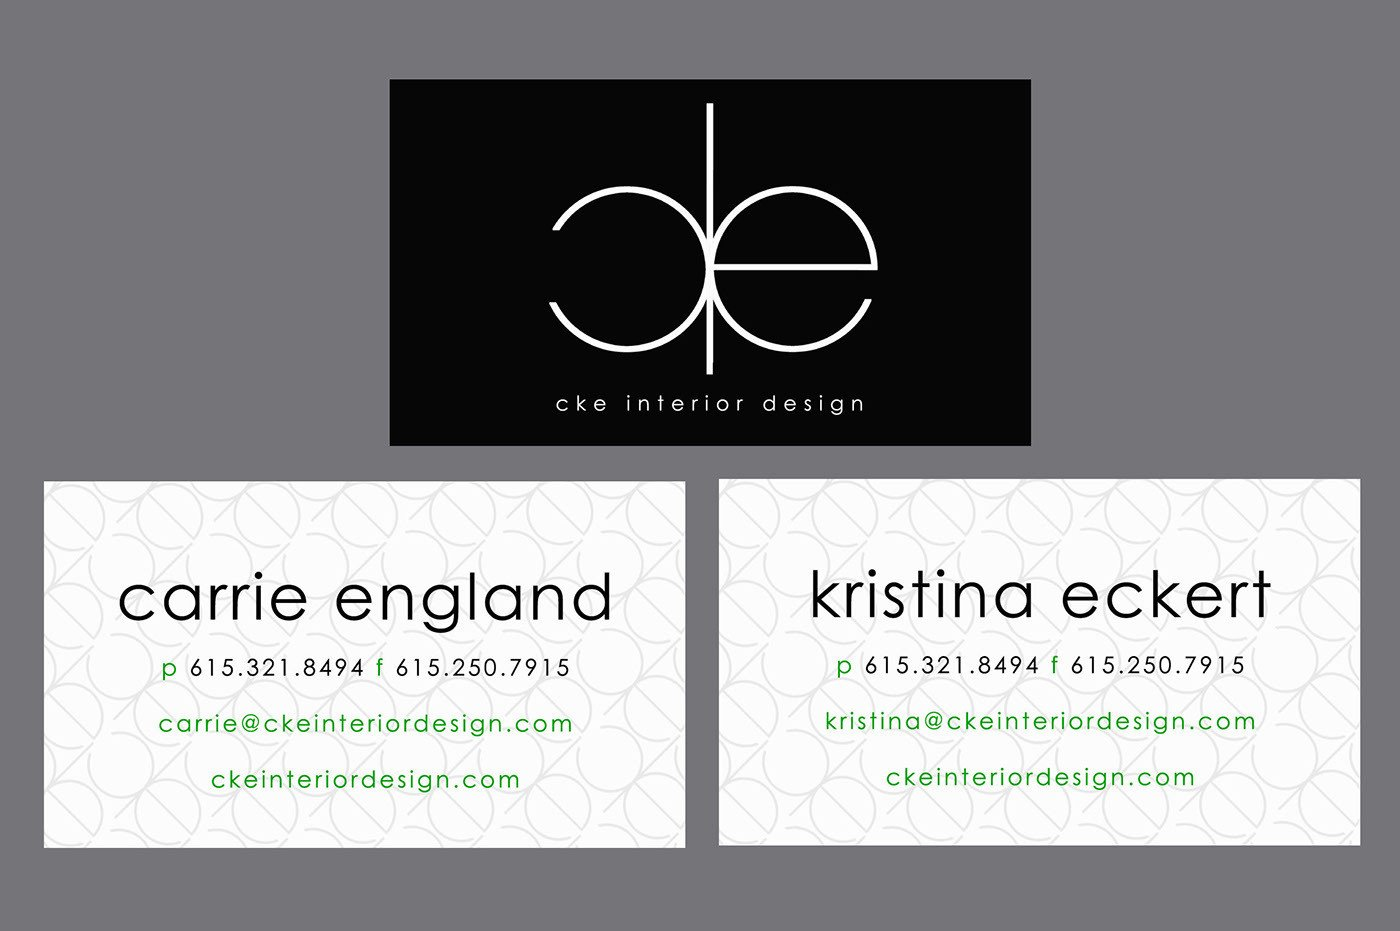 Interior Design Business Cards Cke Interior Design Business Cards On Behance